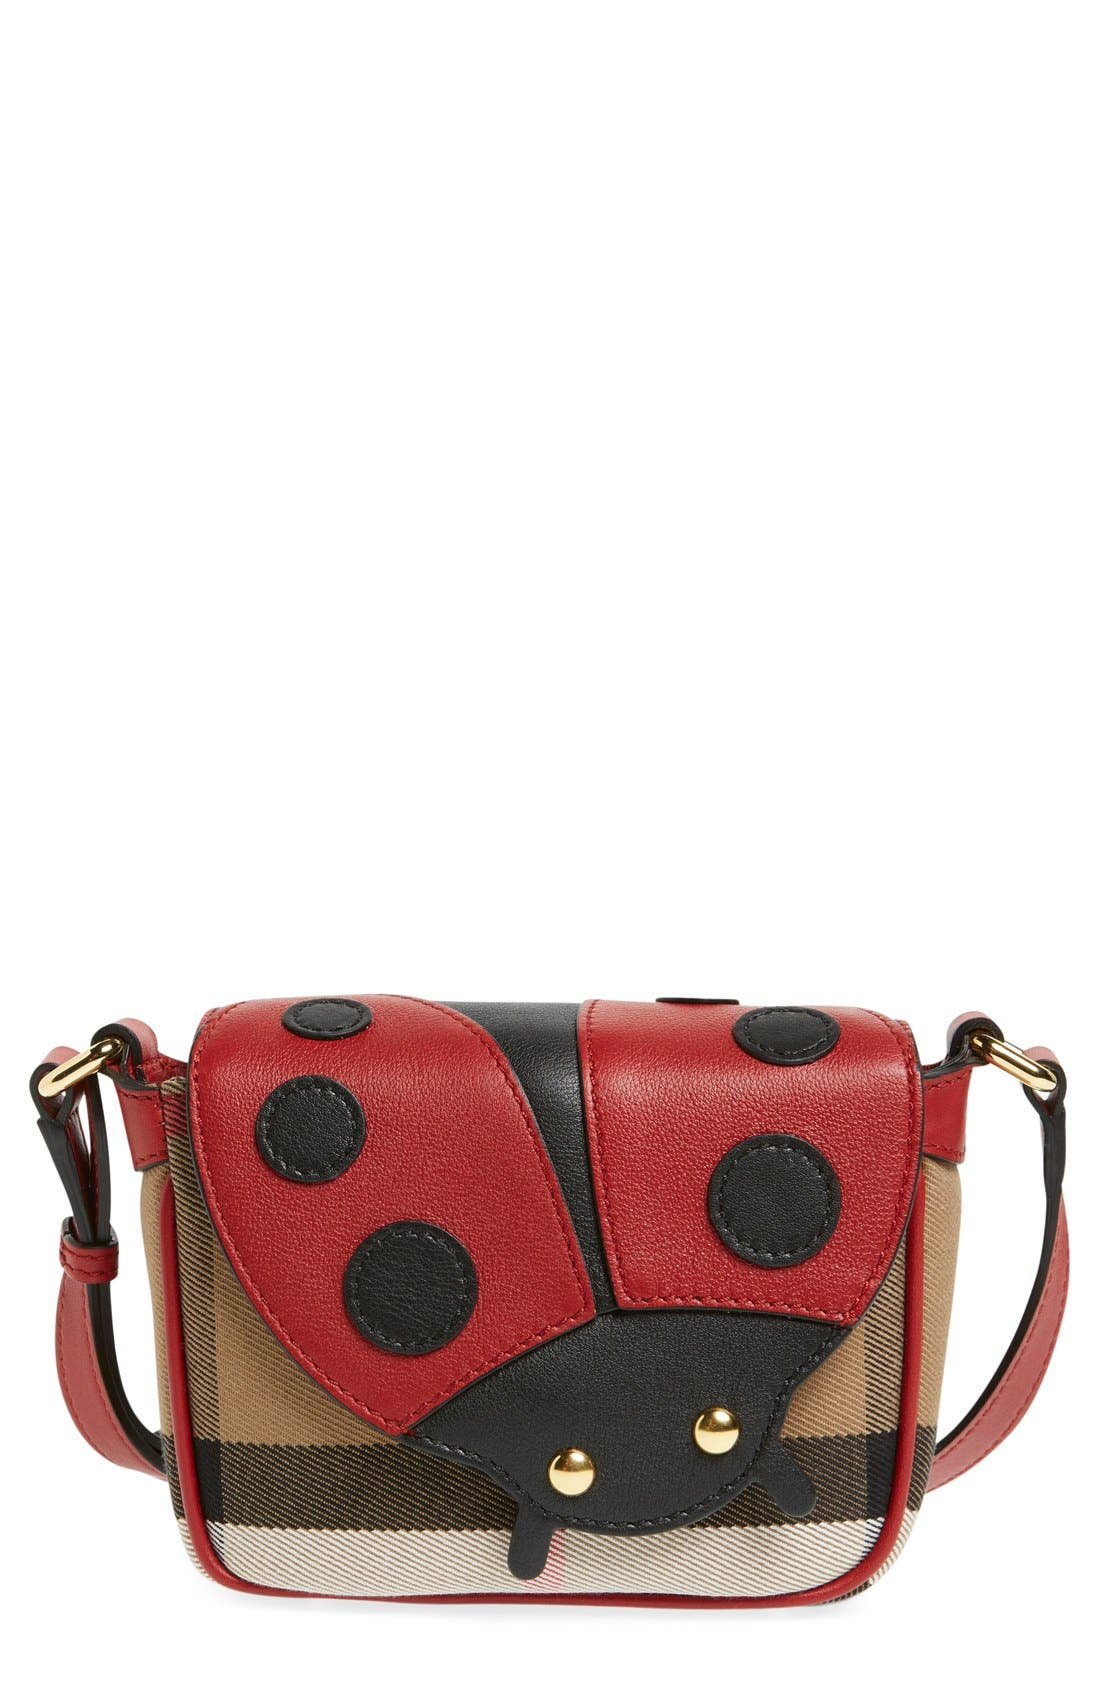 Alternate Image 1 Selected - Burberry 'Ladybird' Cotton & Leather Crossbody Bag (Girls)